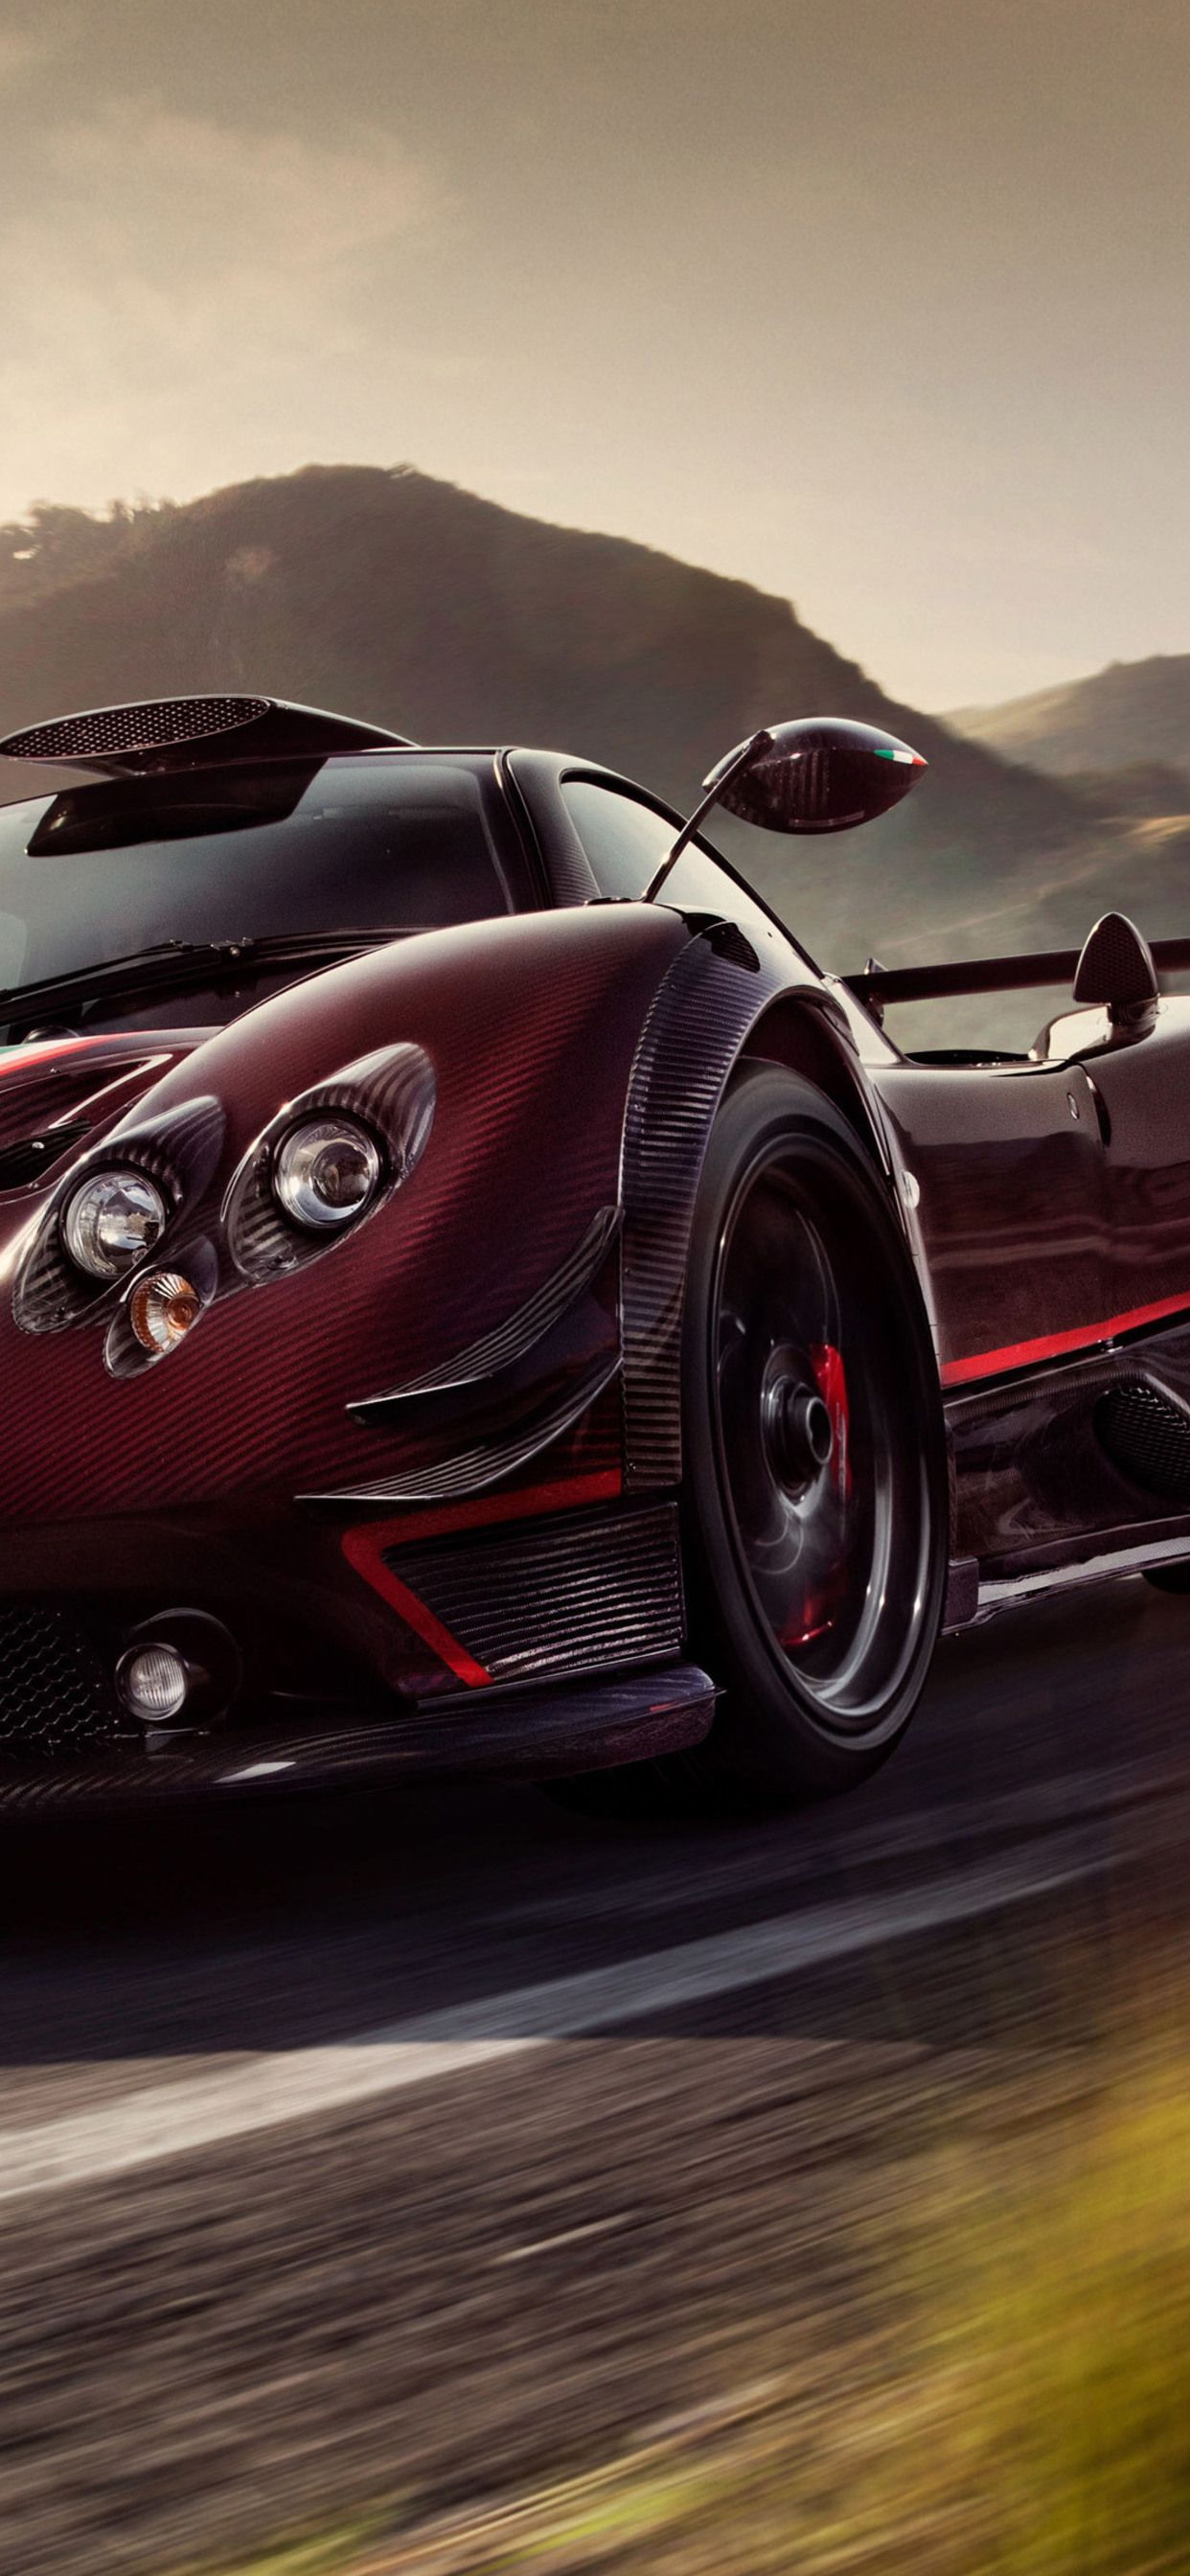 Pagani And Koenigsegg Iphone Wallpapers Top Free Pagani